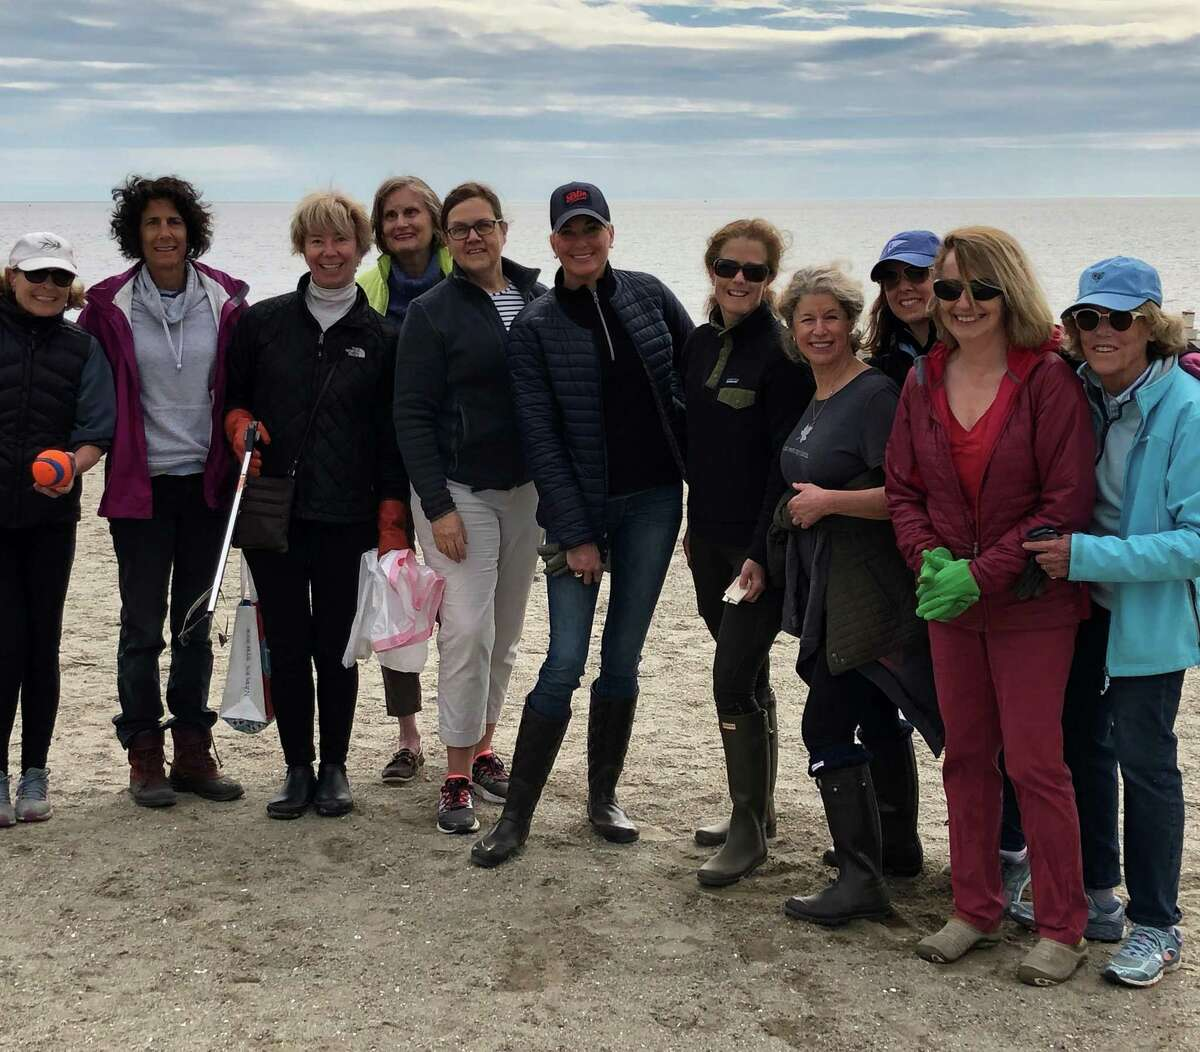 The clean-up crew, from left, Virginia Dean, Lorraine Indiveri, Nan Nelson, Sue Wittekind, Claire Van de Berghe, Olivia Charney, Jen Bargas, Whitney Vose, Candace Wagner, Barbara Wooten, Penny Ross. Not pictured, Carolyn Stubbs.